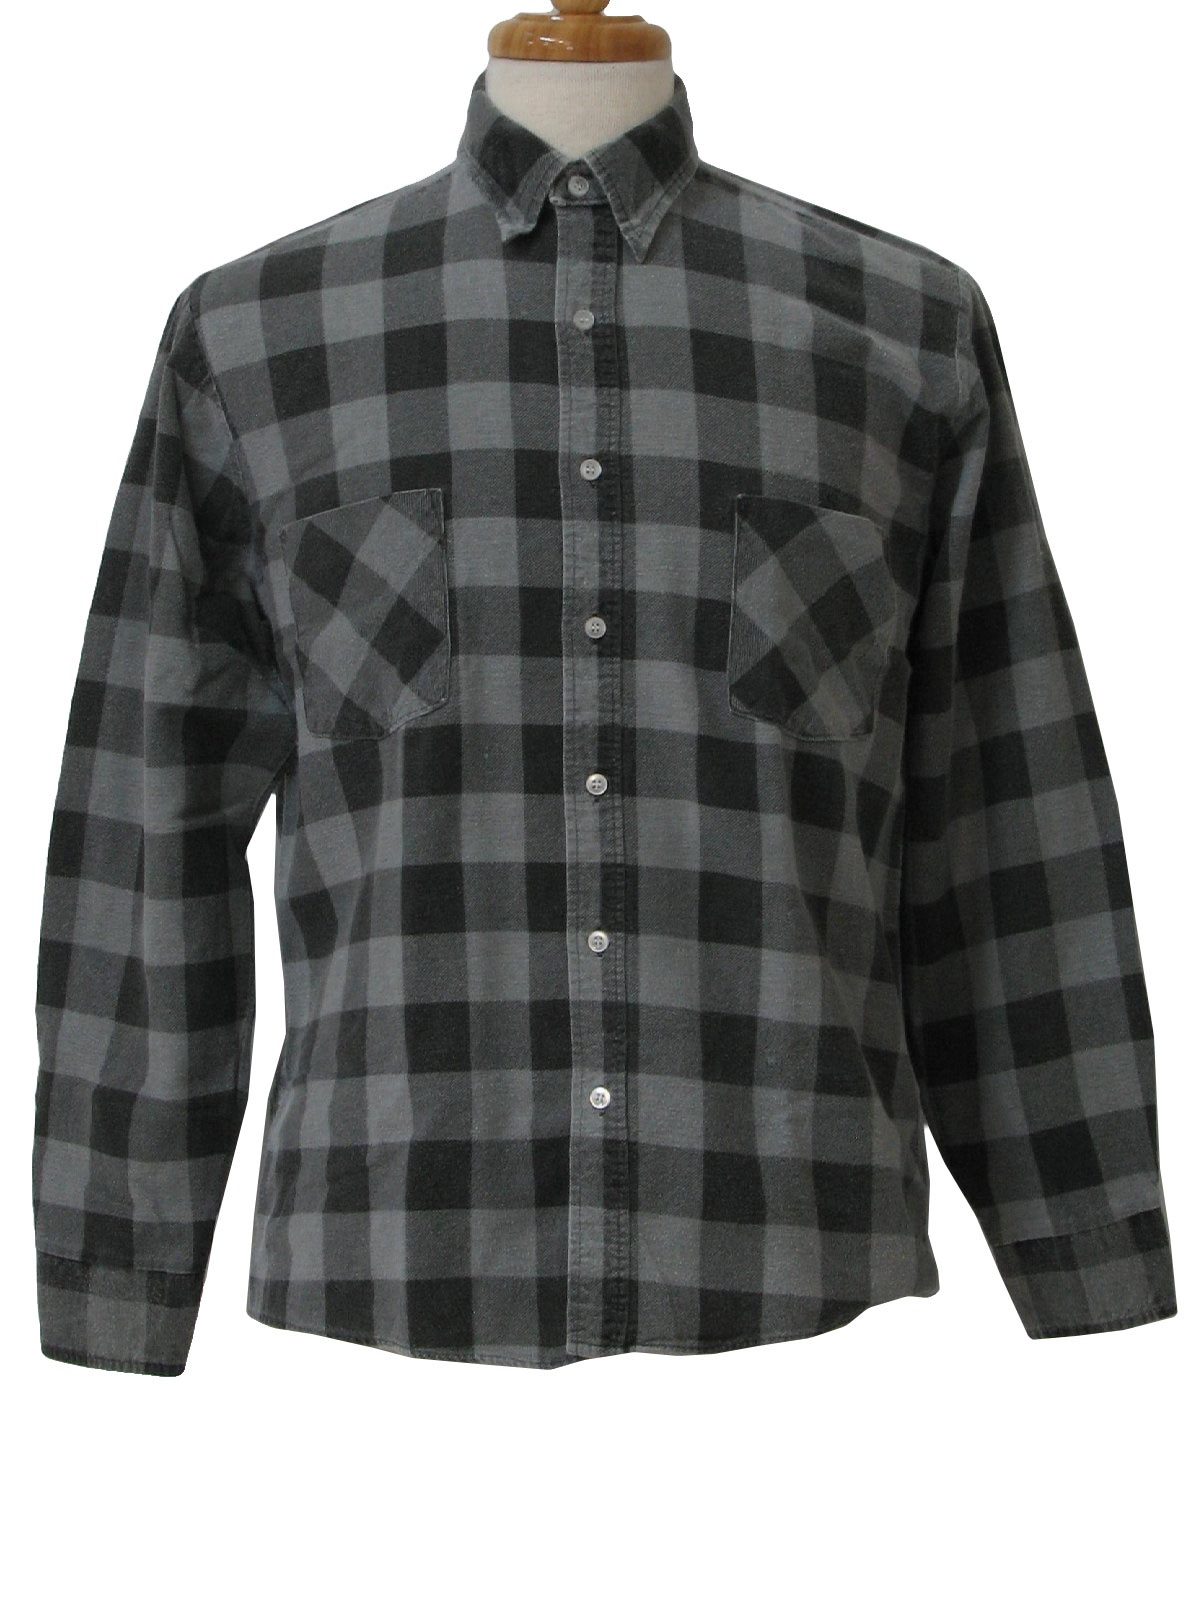 Men's Flannel Shirts. We bet every guy wishes they had at least one or two more men's flannel shirts to see them through the winter. Consider making these a daily staple in cold weather, because there's literally nothing easier than throwing on a brushed cotton flannel shirt and knowing you'll stay warm inside the house and at work while feeling like you're in your pajamas all day.